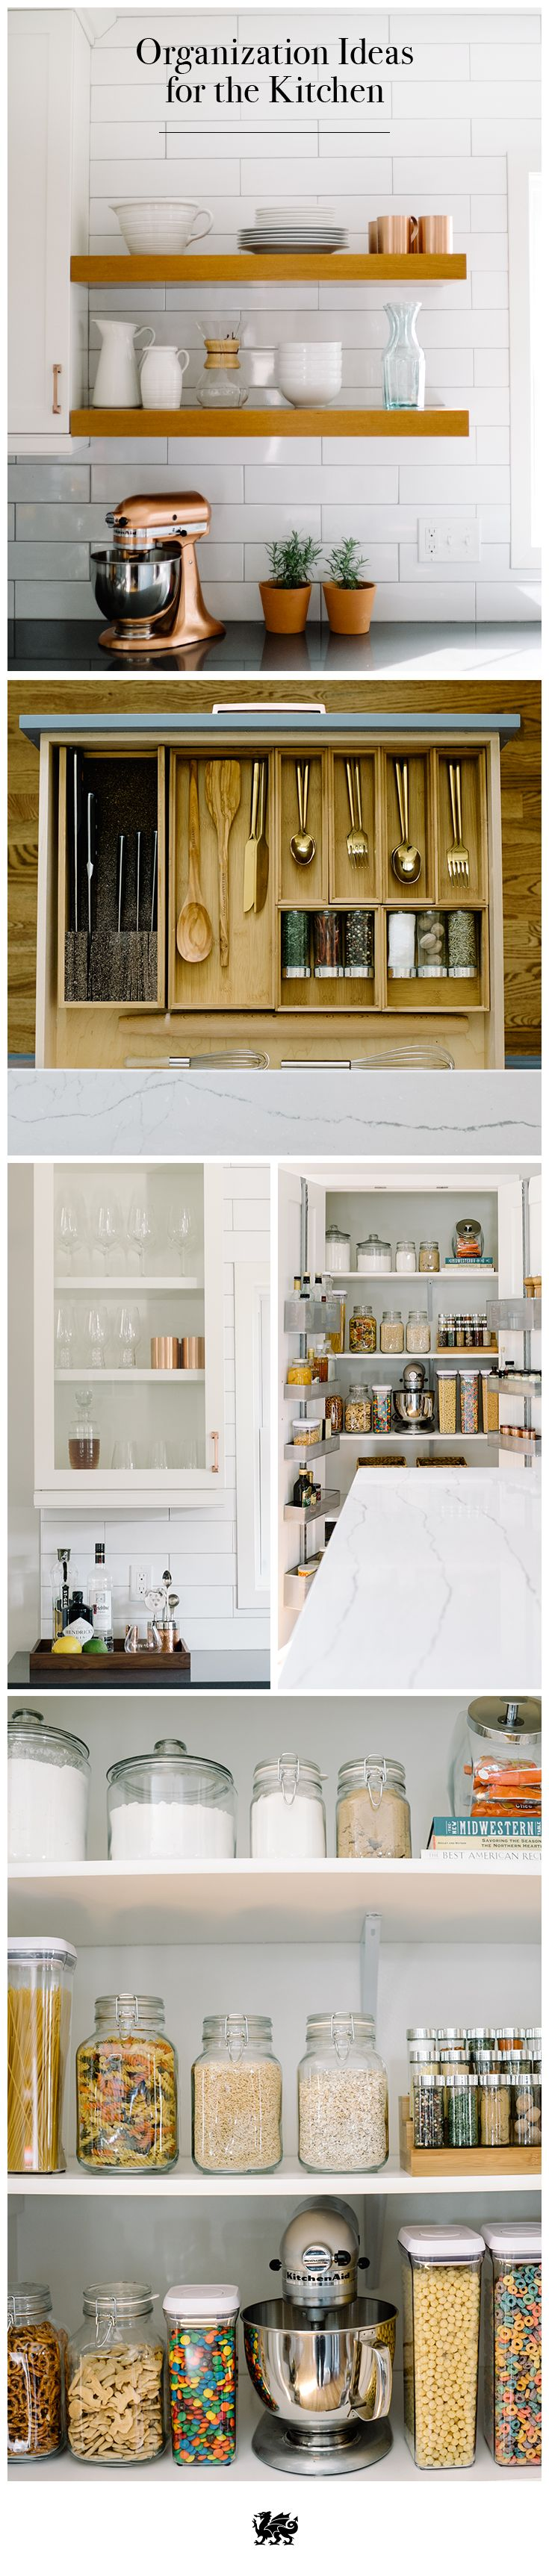 From sleek open shelving to hidden spice drawers, we have a few tips to organize your kitchen. Click to learn how simple it can be!